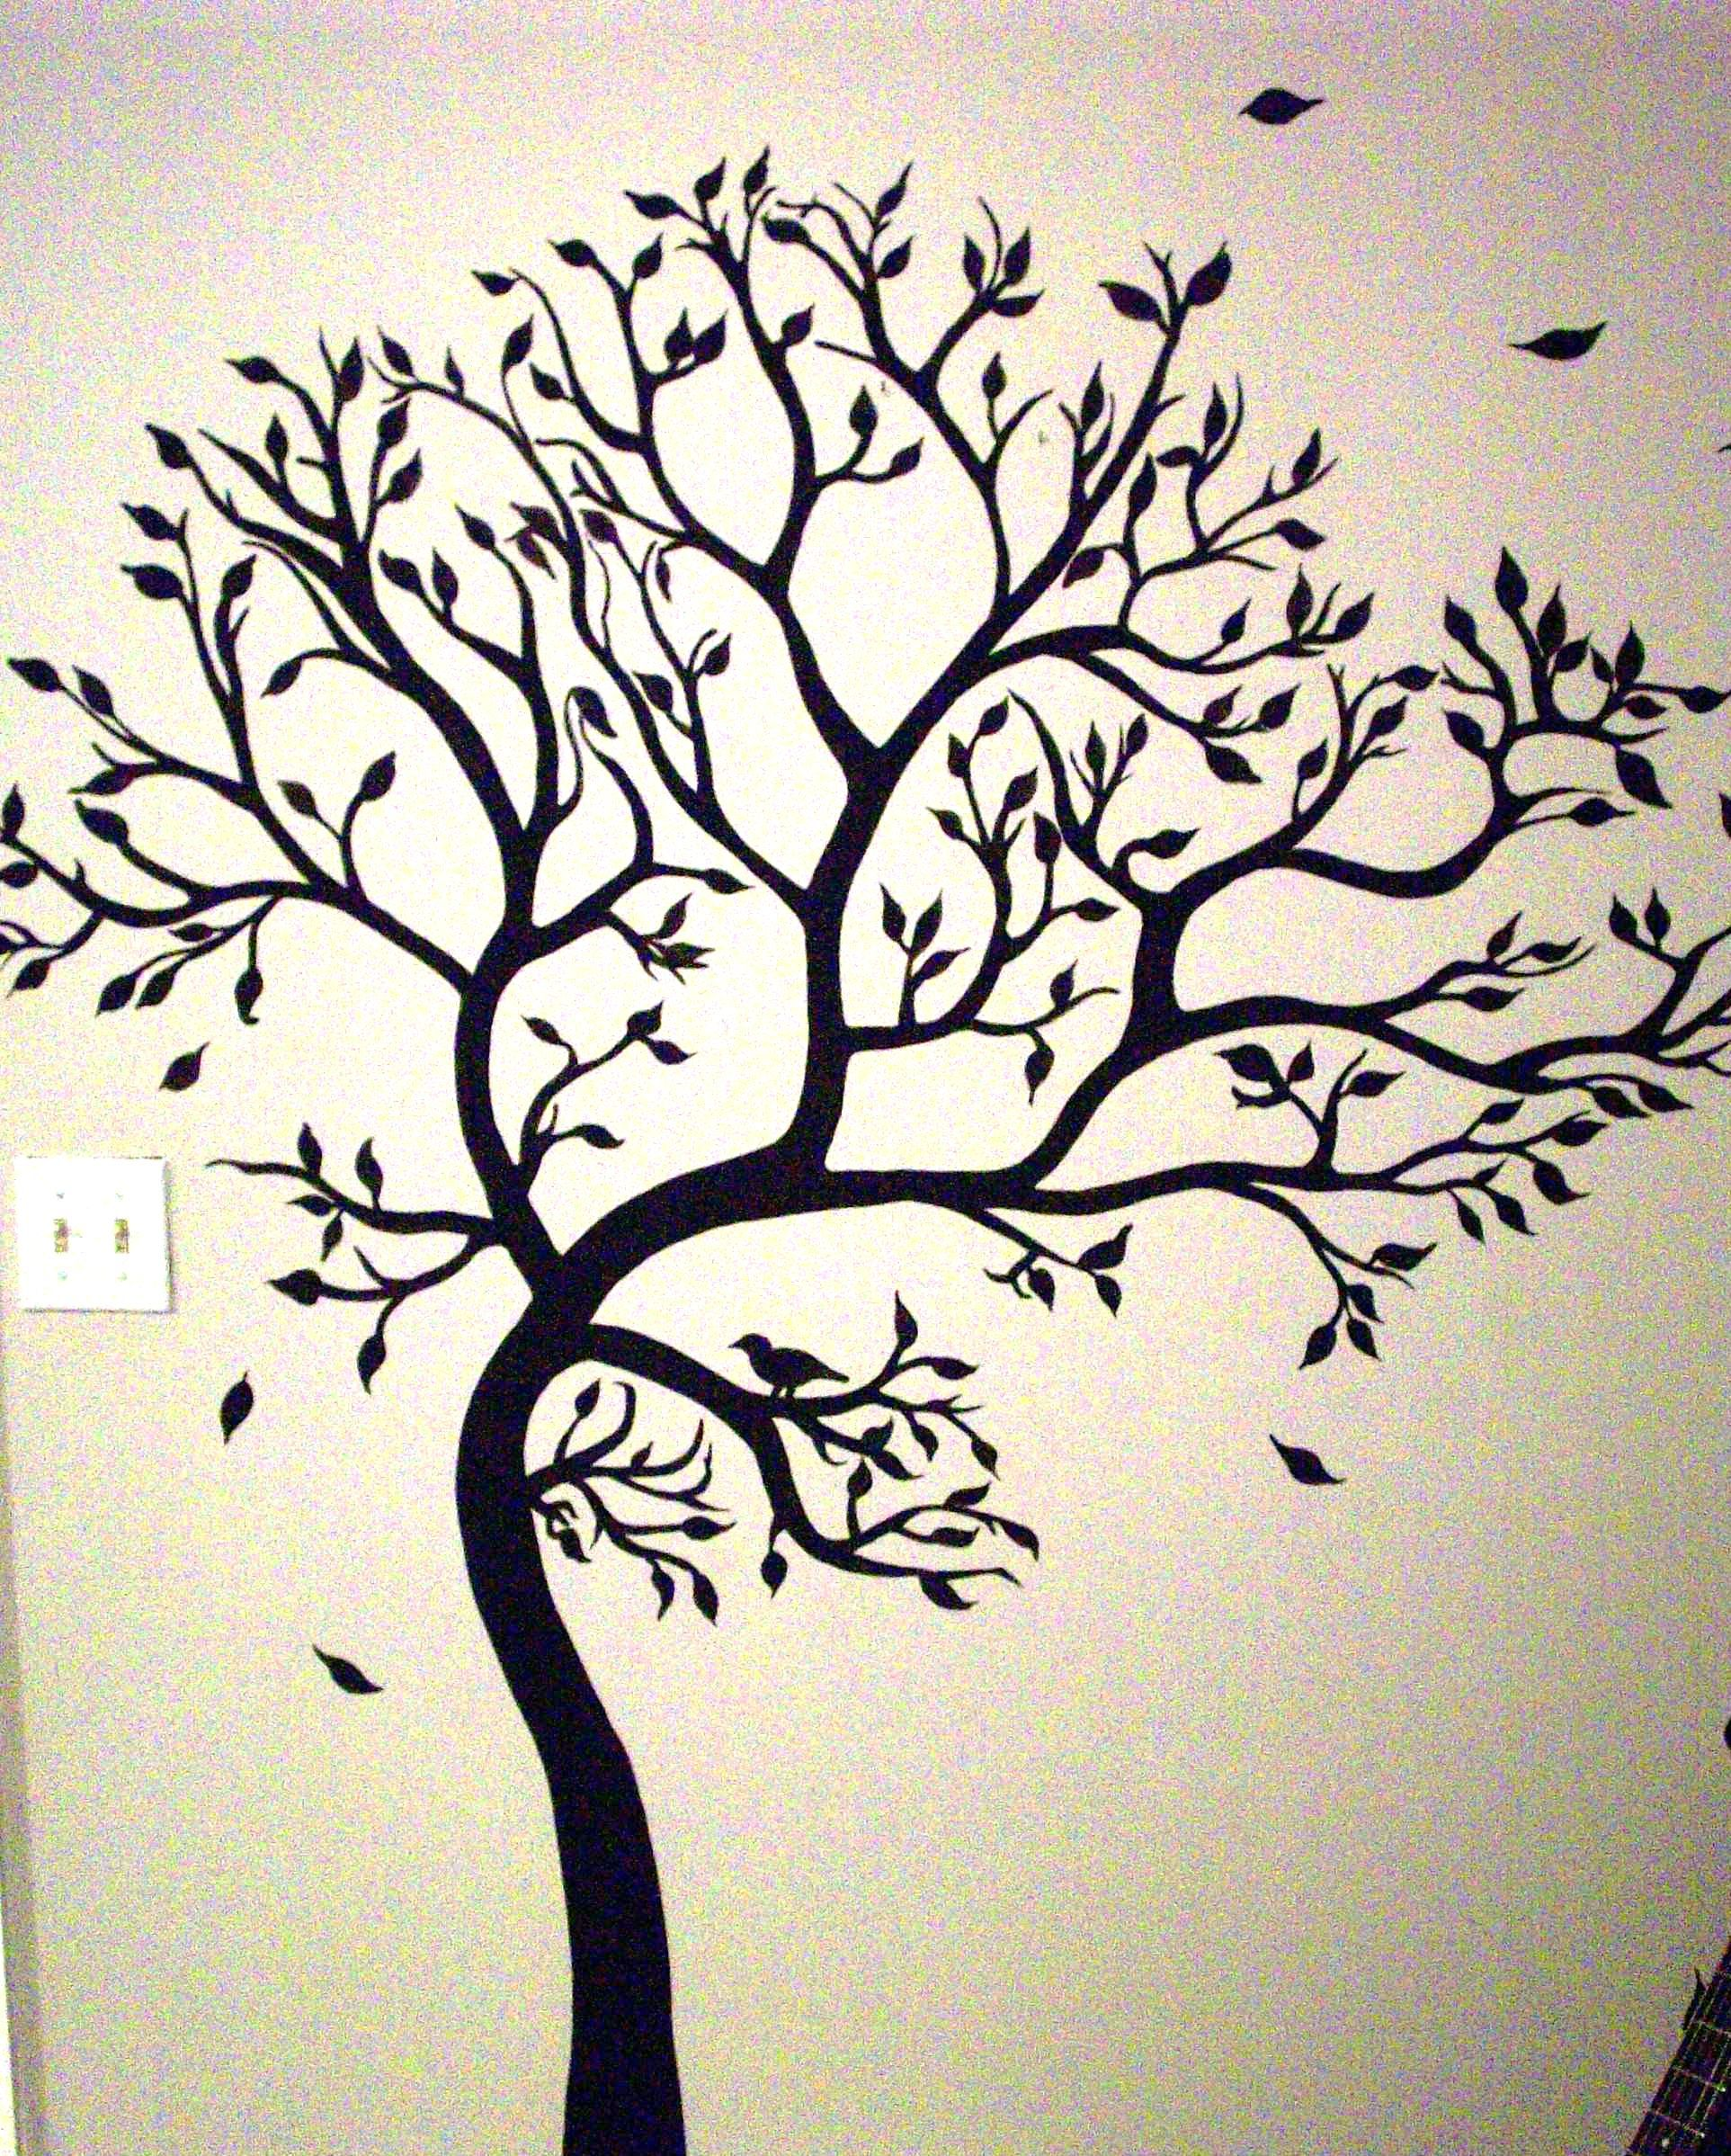 Family Tree Murals For Walls Mural Tree She Painted Mural Ideas Fonts Pinterest